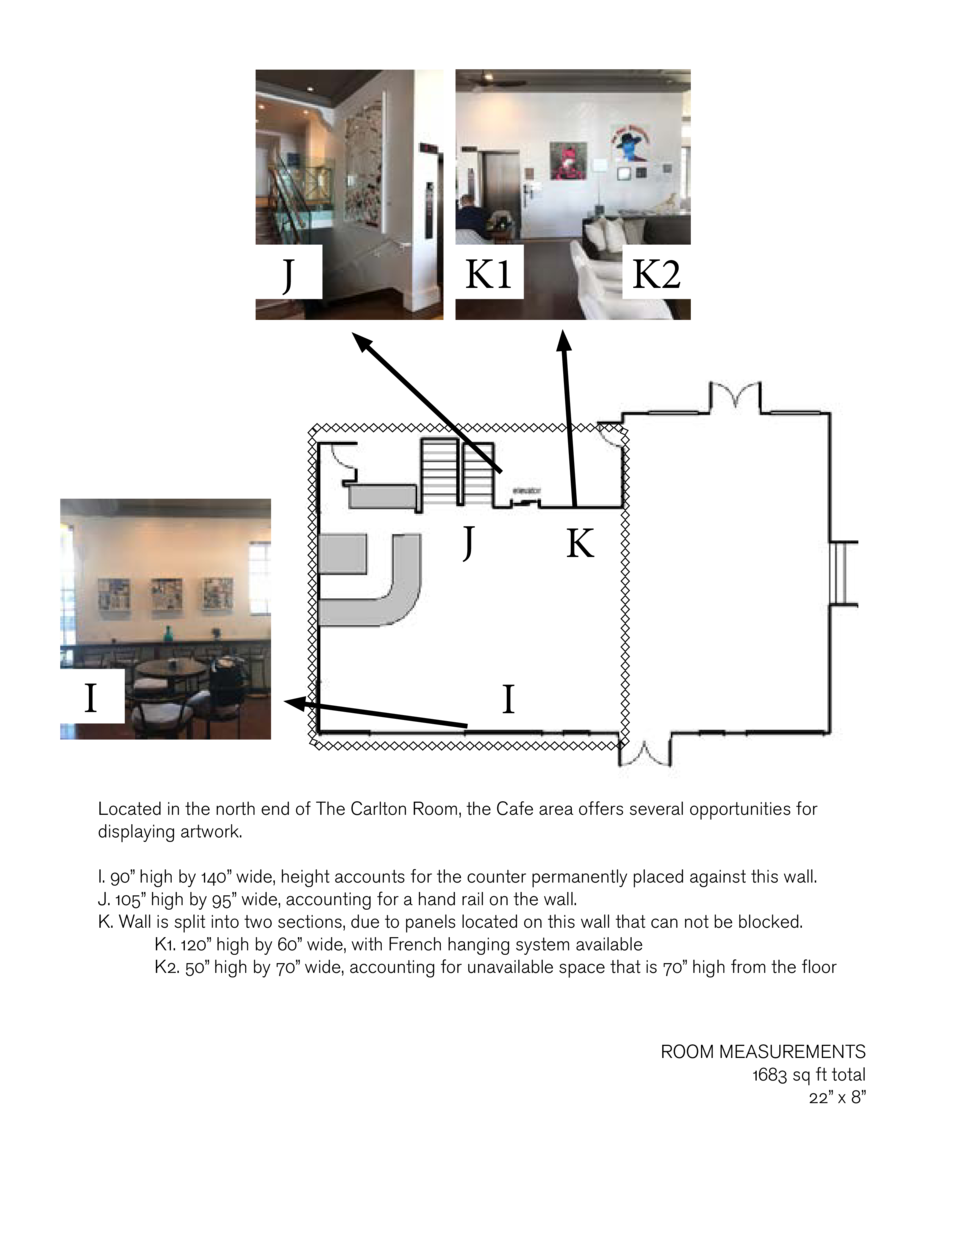 J  K1  J I  K2  K I  Located in the north end of The Carlton Room, the Cafe area offers several opportunities for displayi...